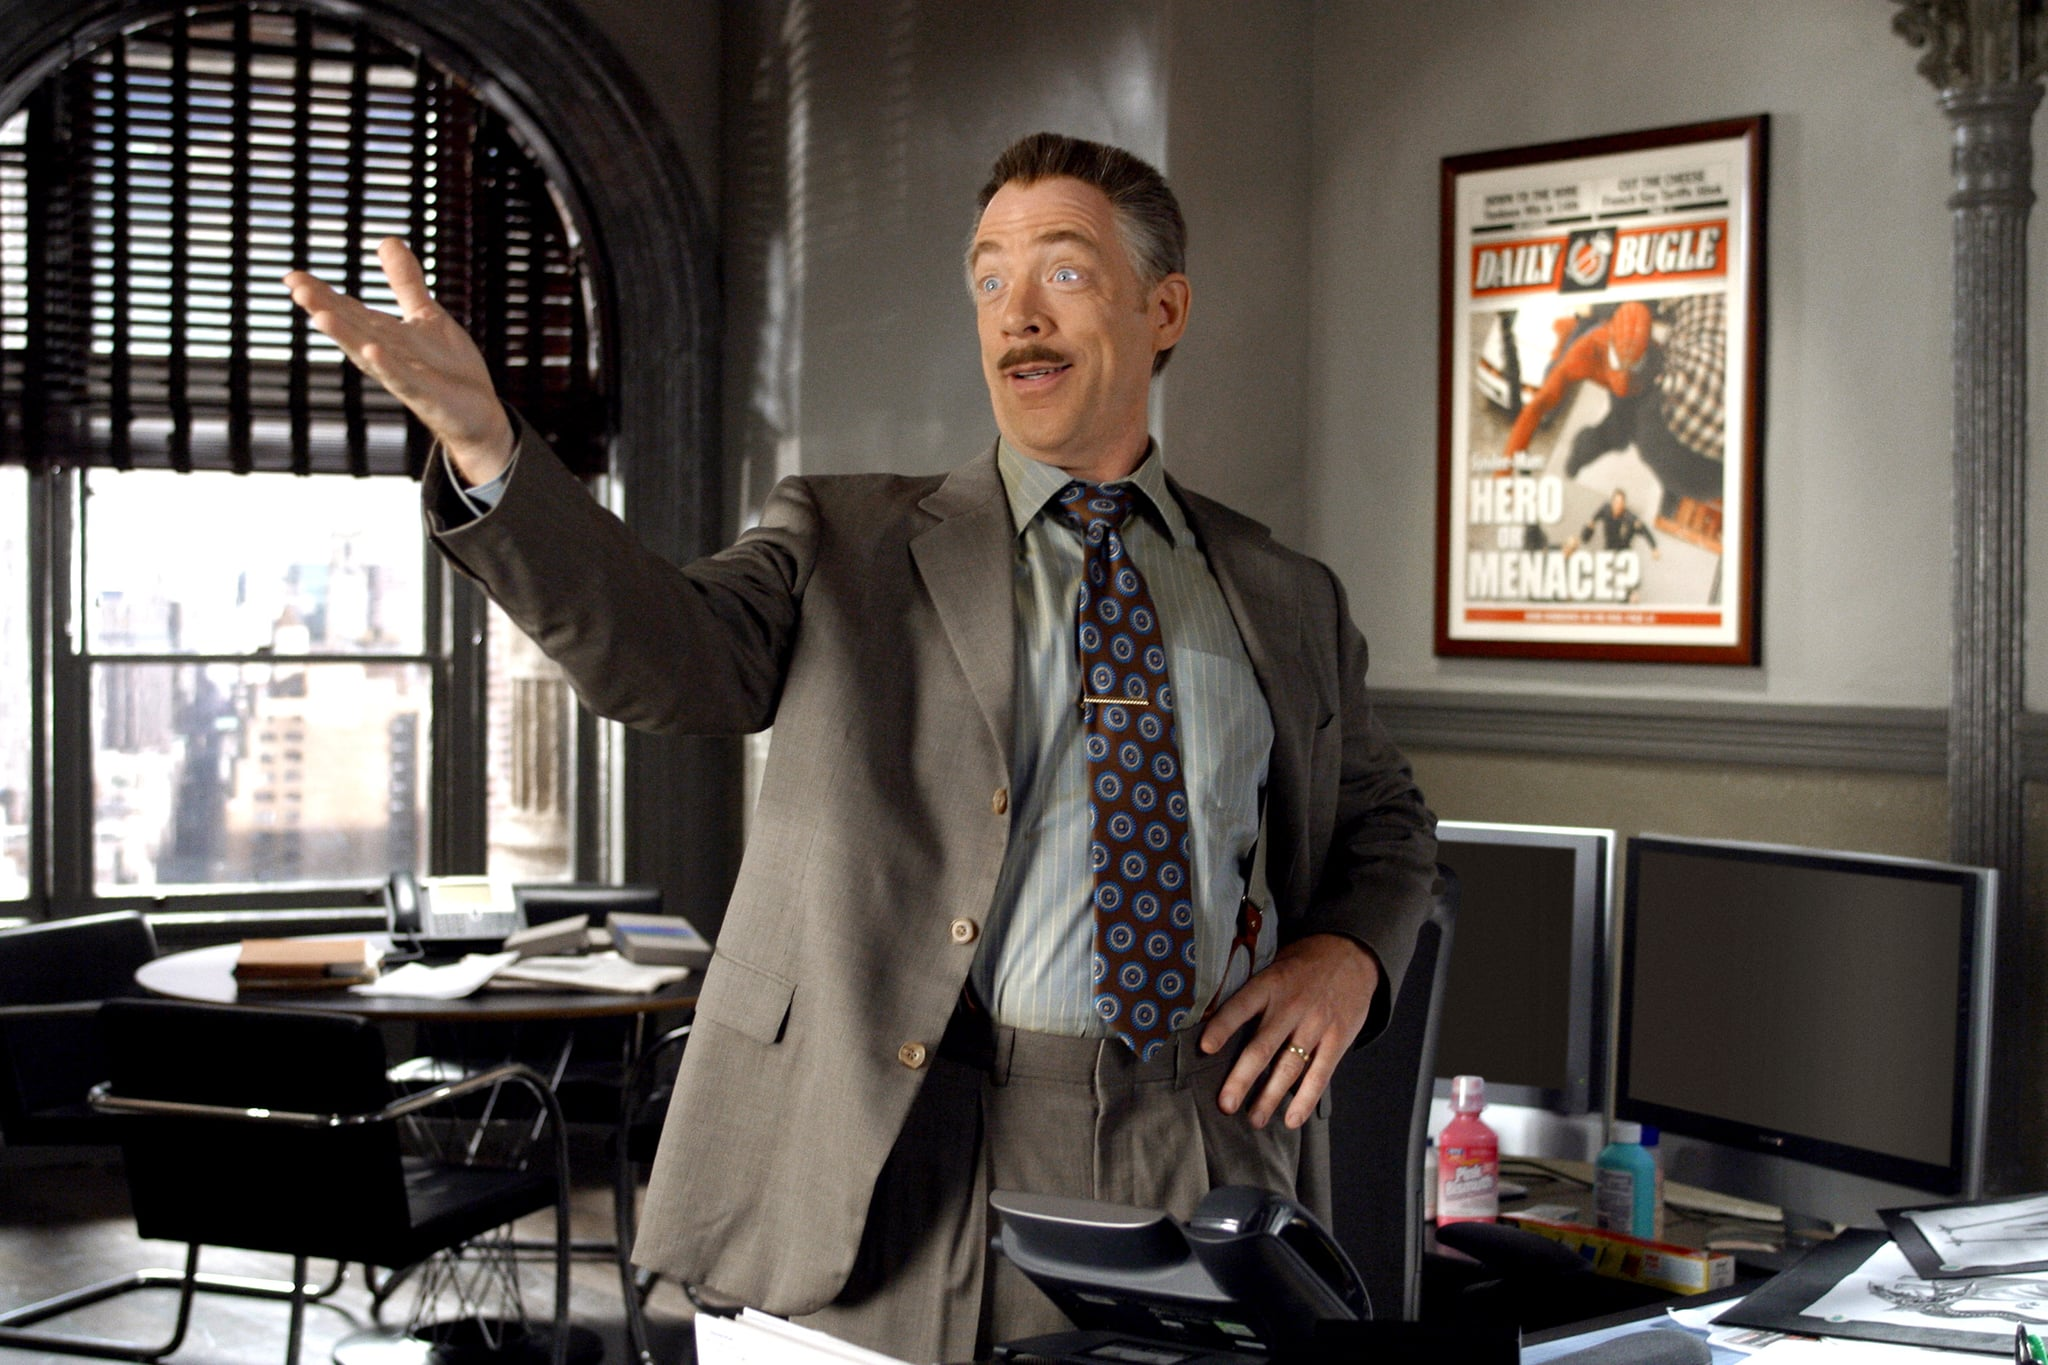 SPIDER-MAN 2, J.K. Simmons, 2004, (c) Columbia/courtesy Everett Collection